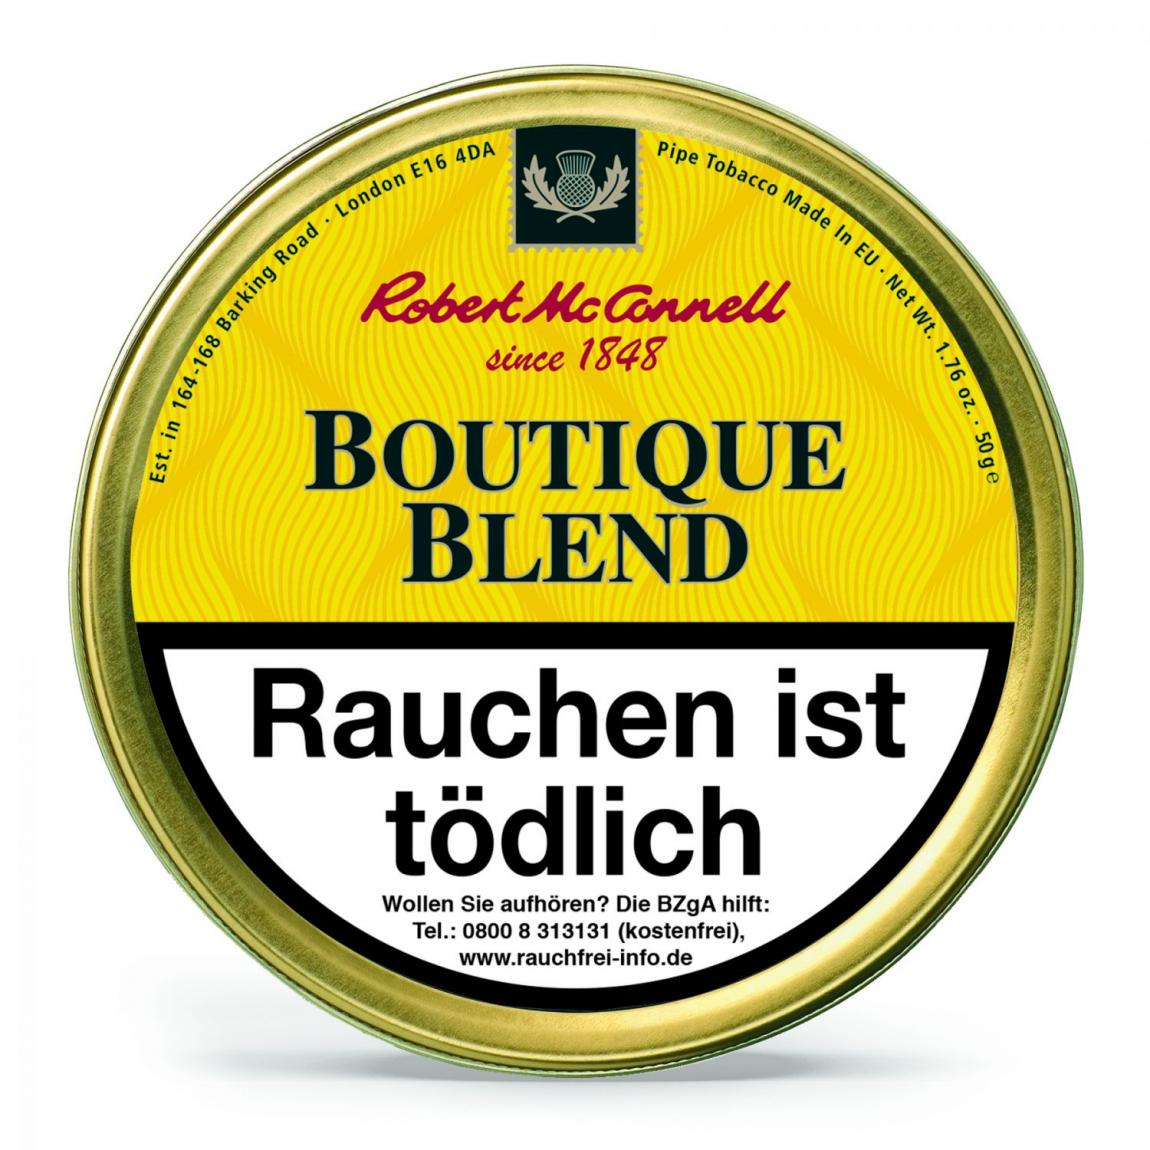 Robert McConnell Heritage »Boutique Blend« 50g